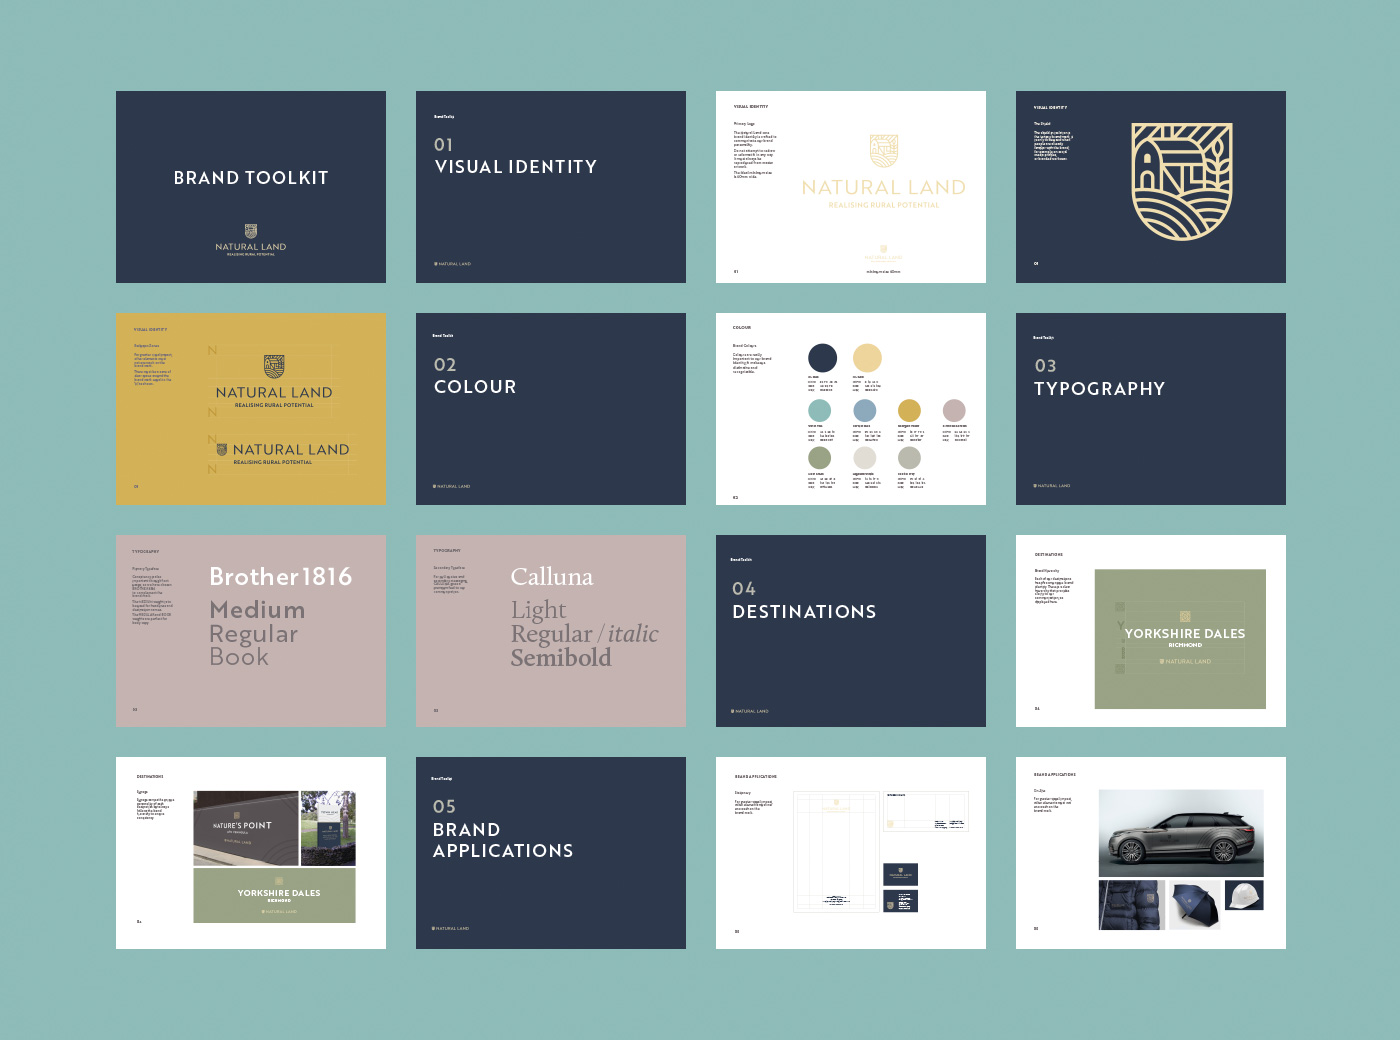 Design agency created brand toolkit for Natural Land